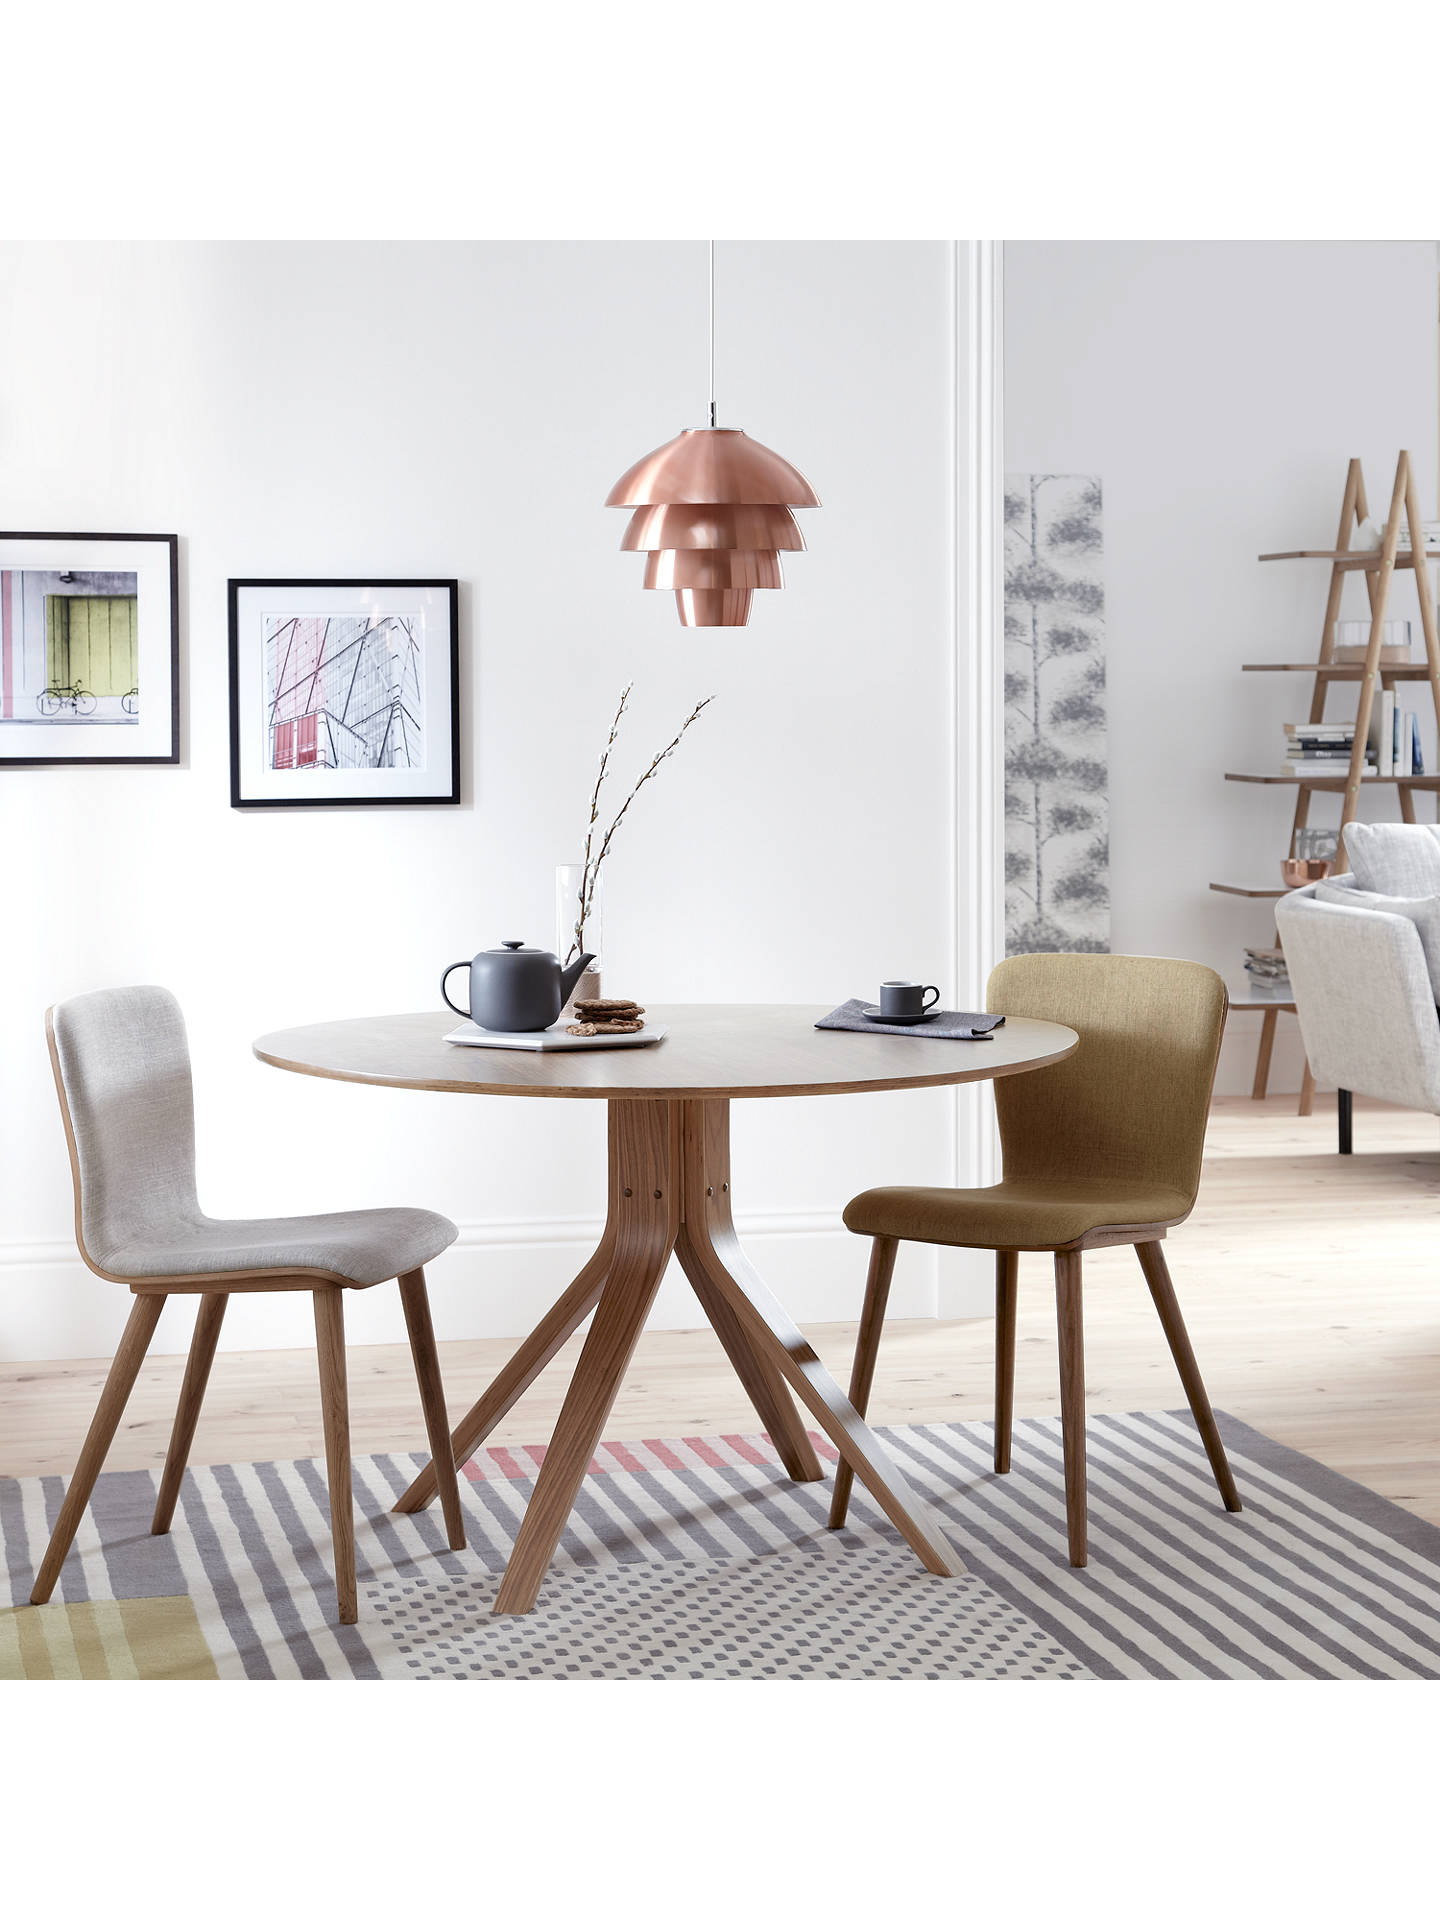 Buyhouse by john lewis radar 6 seater round dining table walnut online at johnlewis